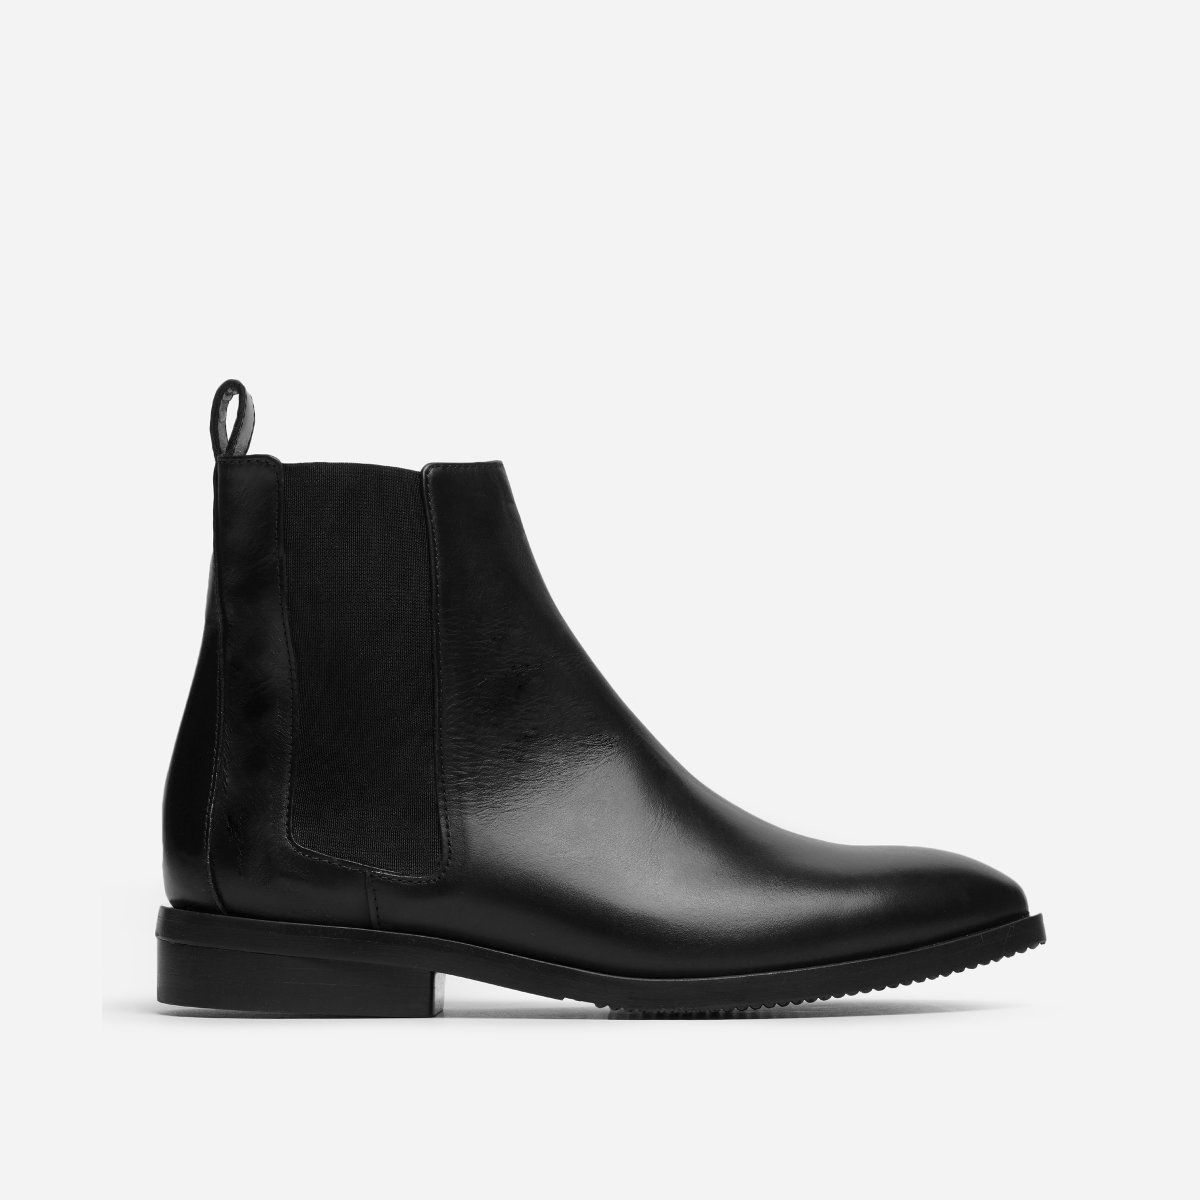 9cc7986ace9 Everlane Modern Chelsea Boot